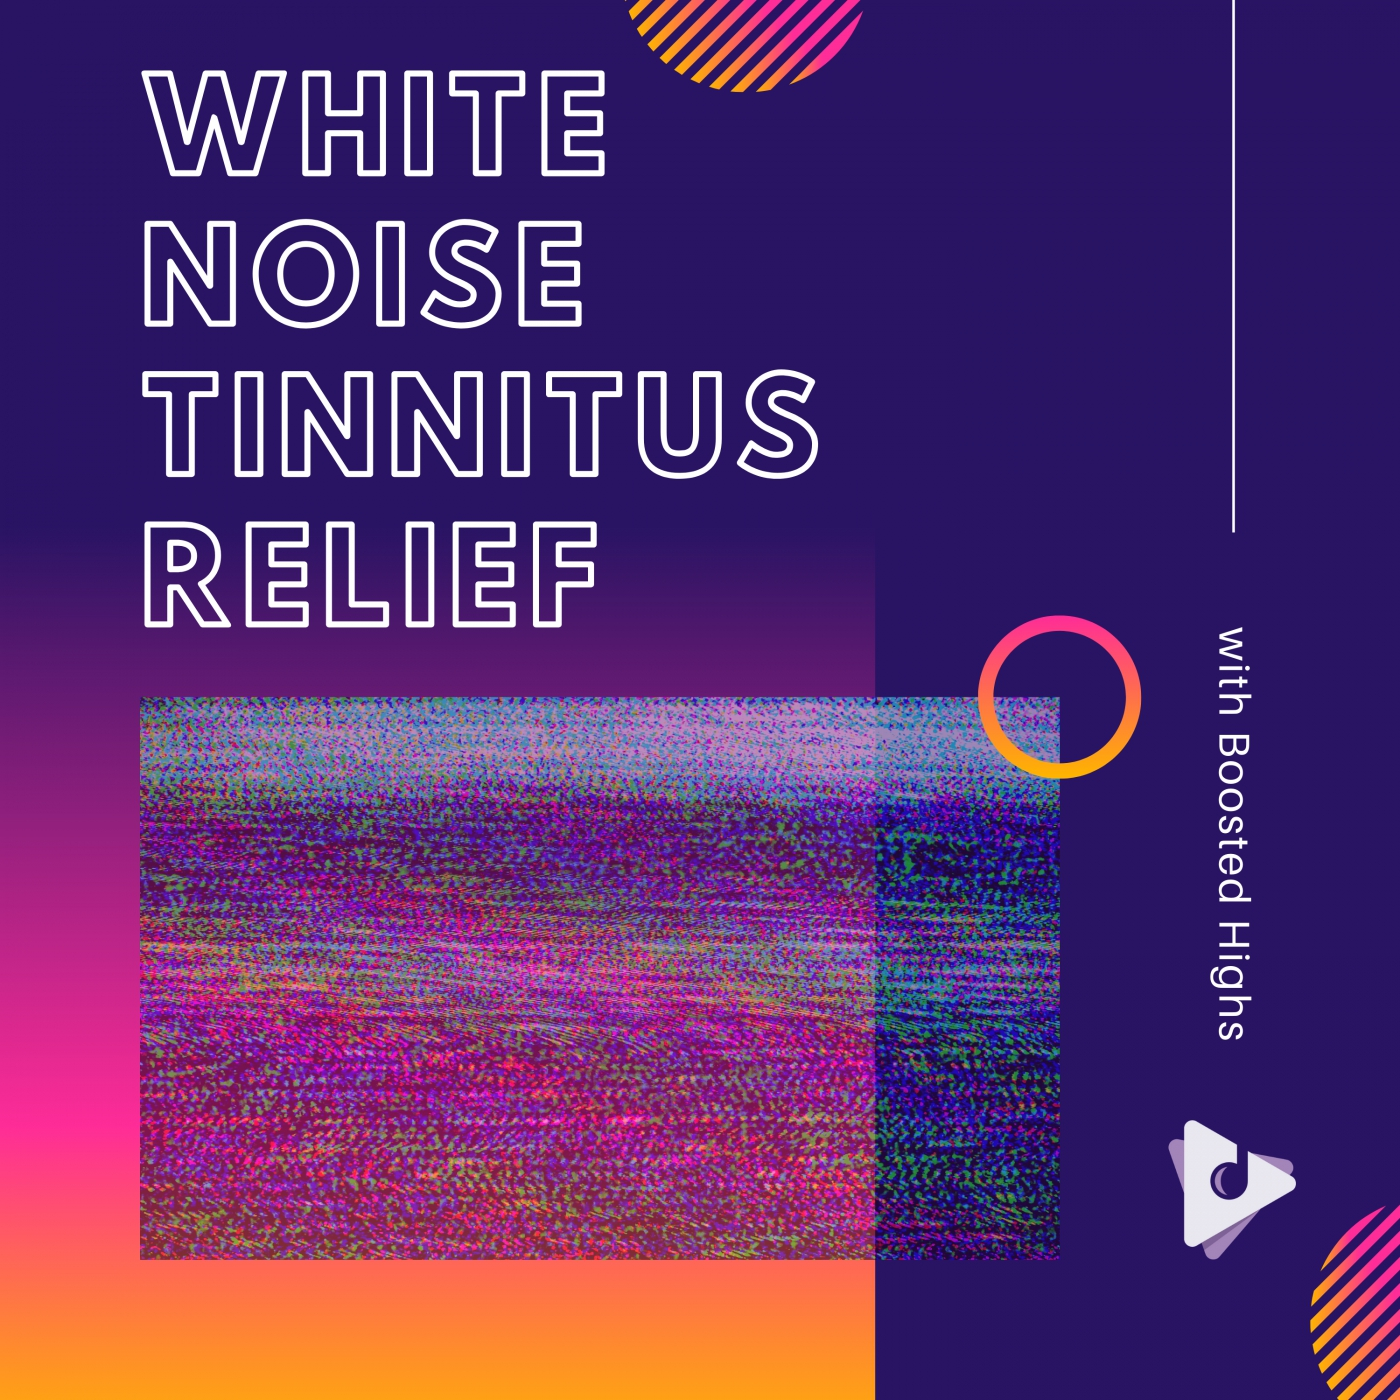 White Noise Tinnitus Relief with Boosted Highs